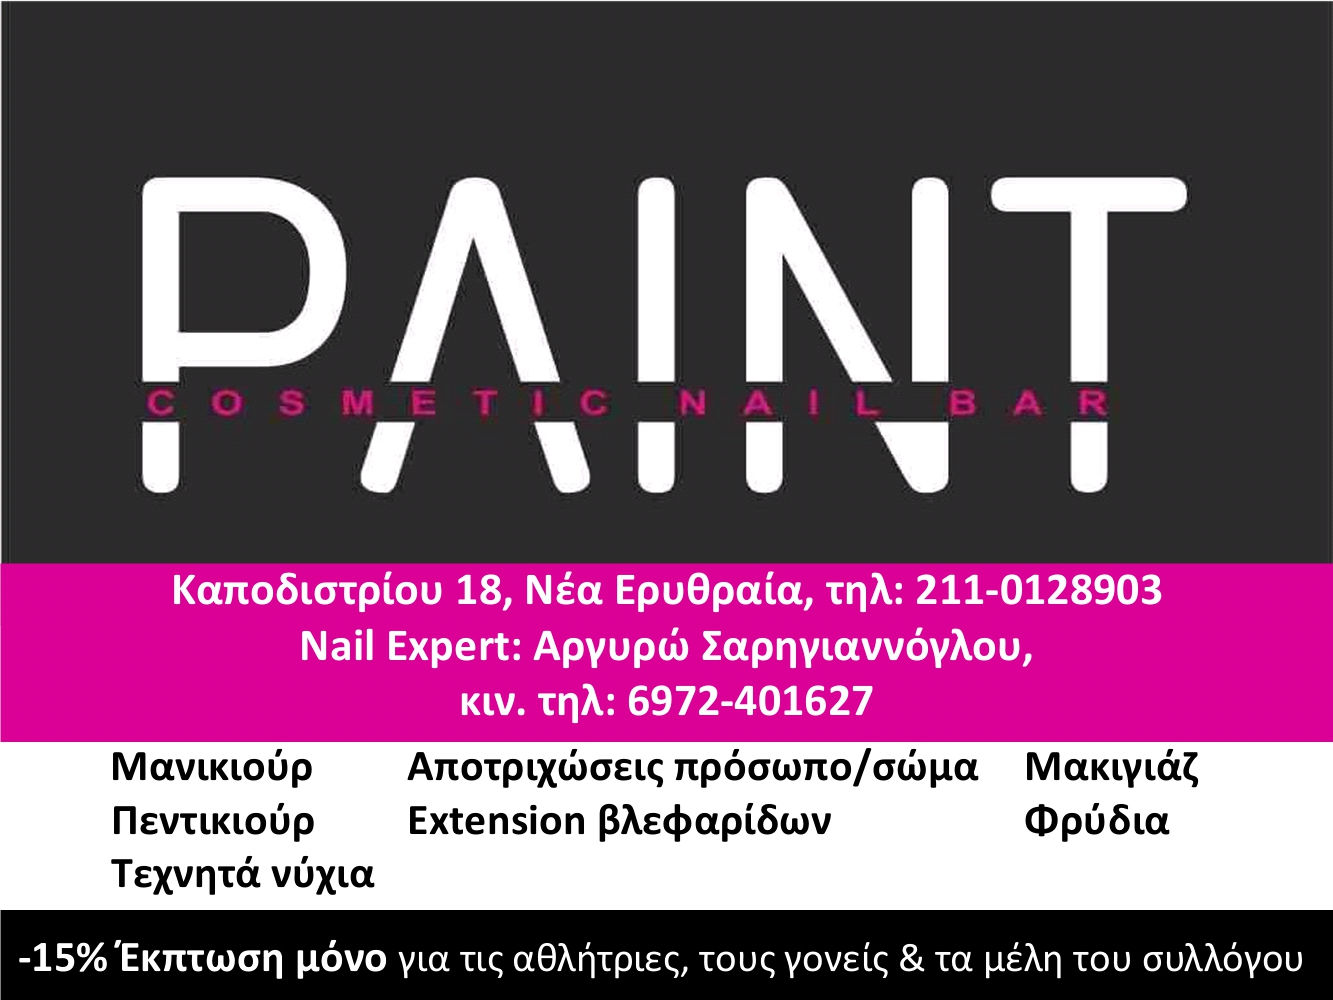 PAINT COSMETIC NAIL BAR